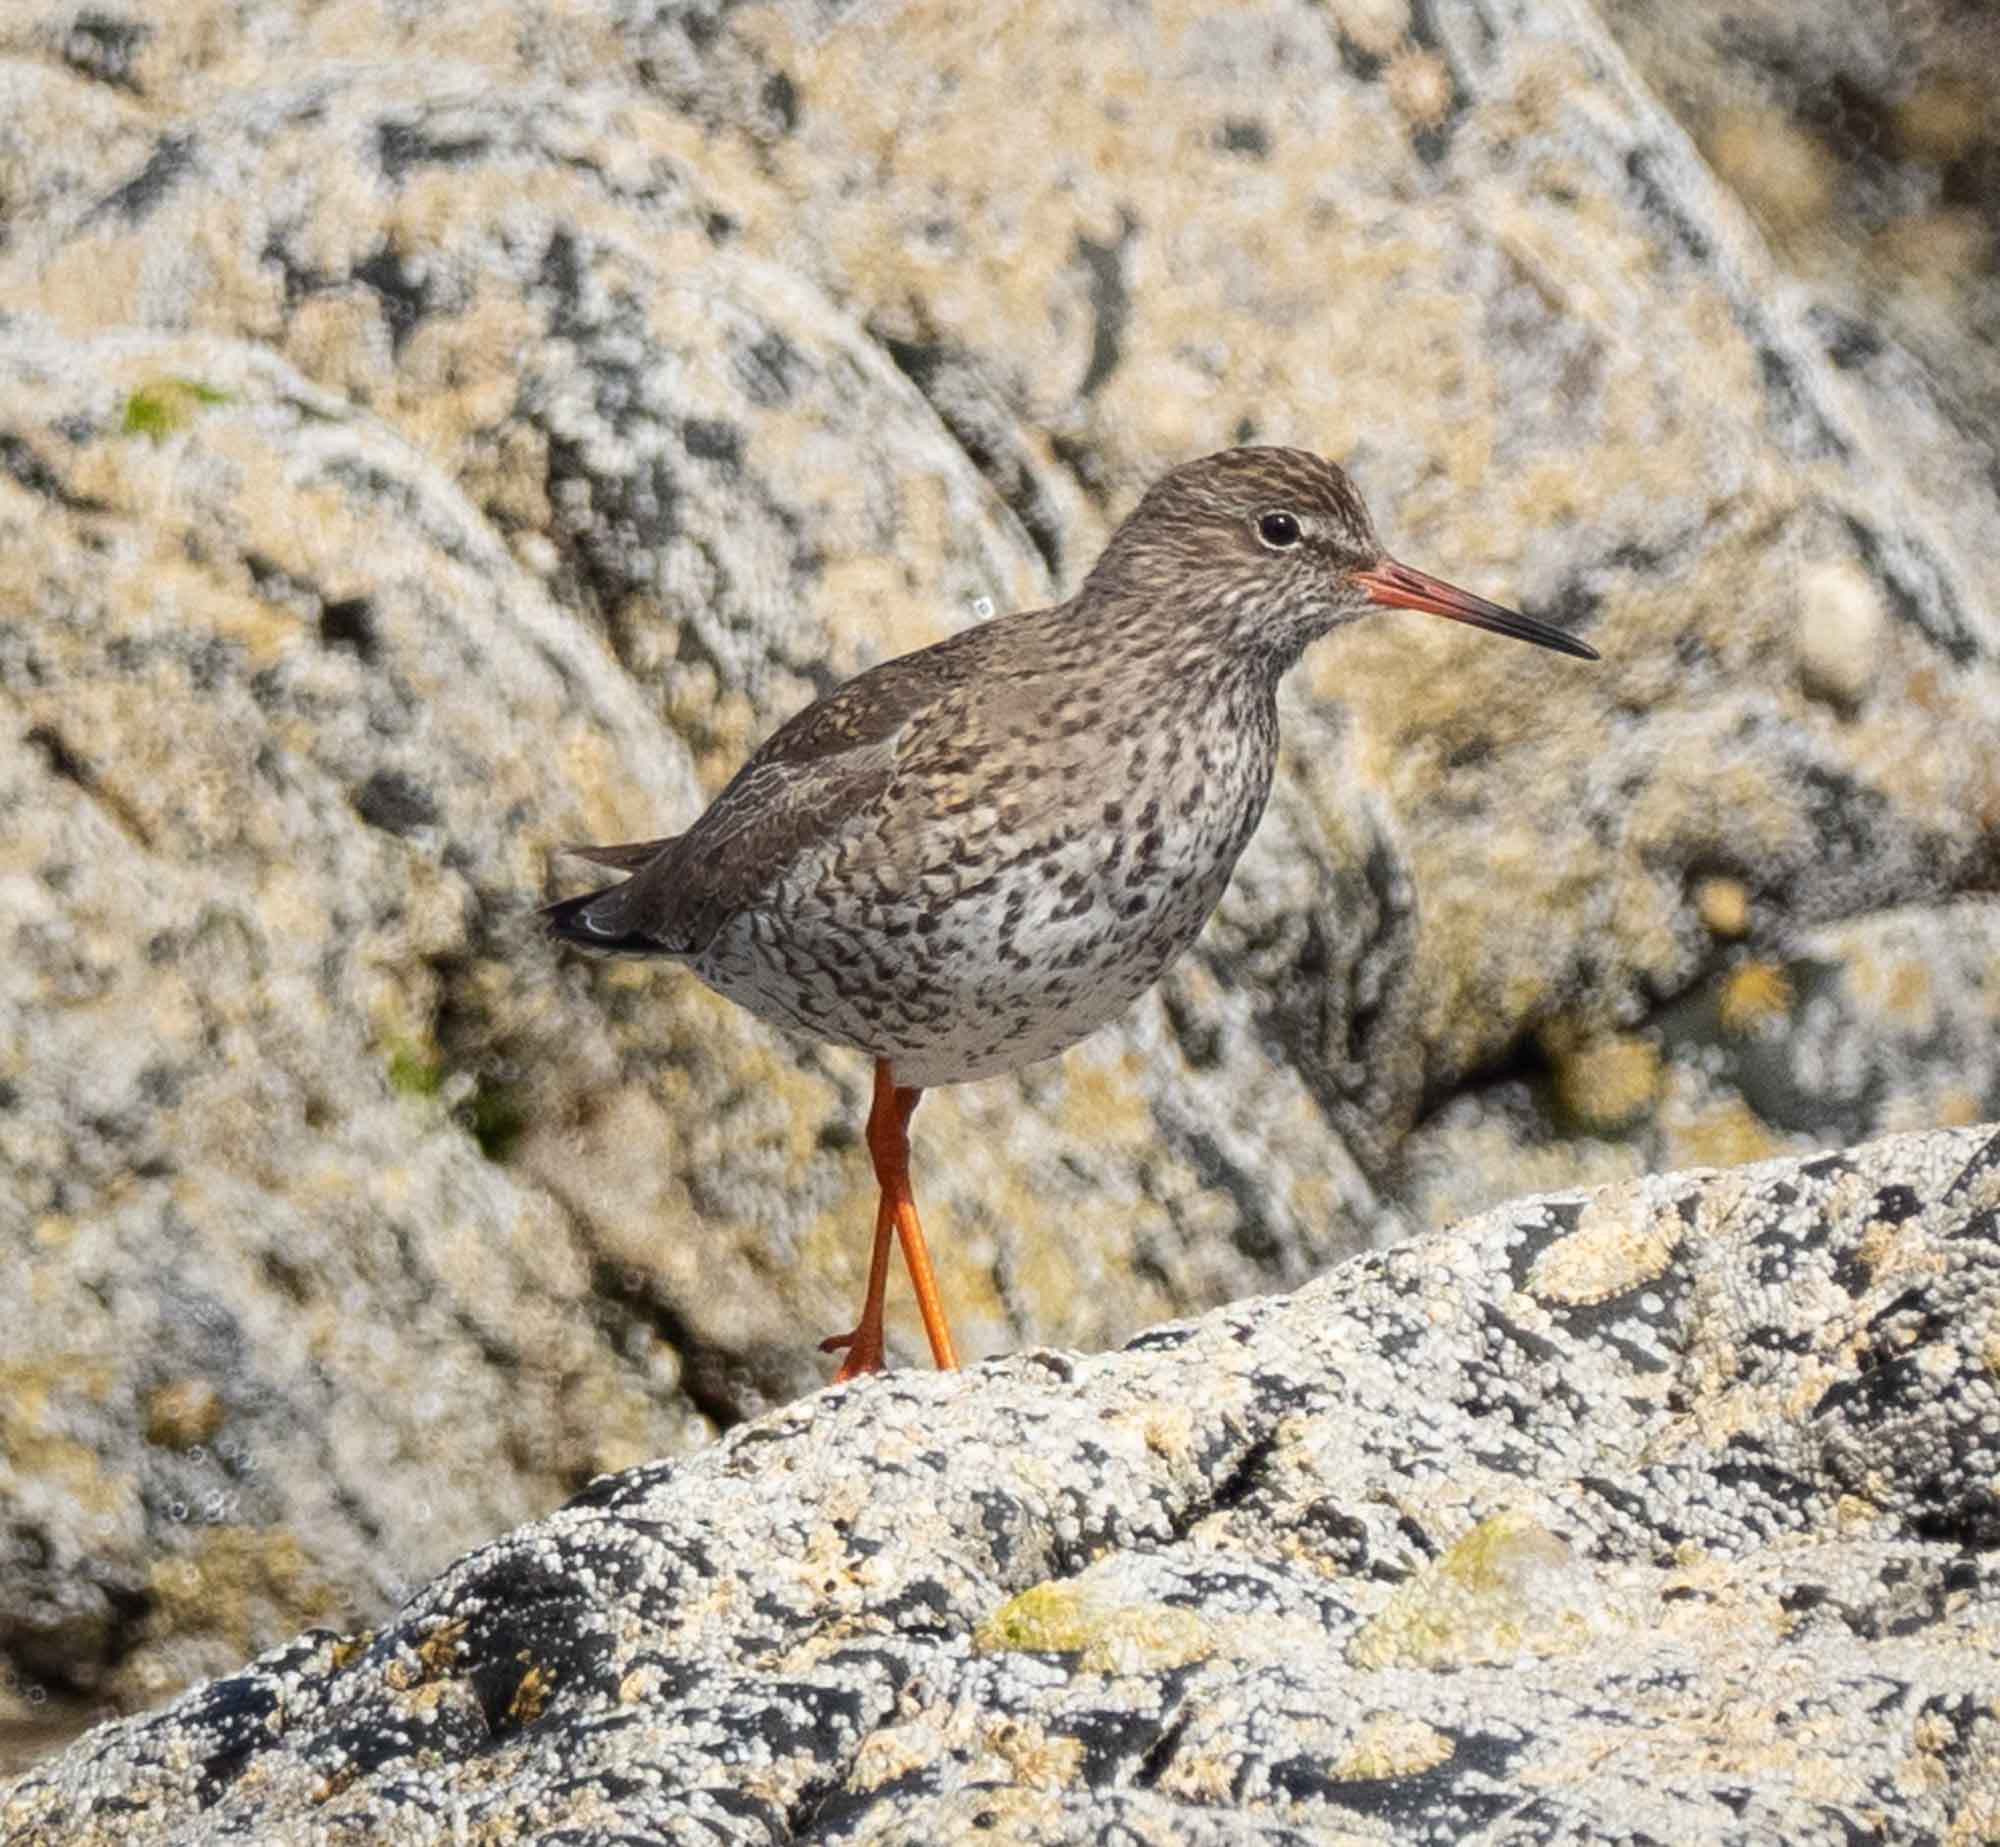 Redshank (breeding plumage)